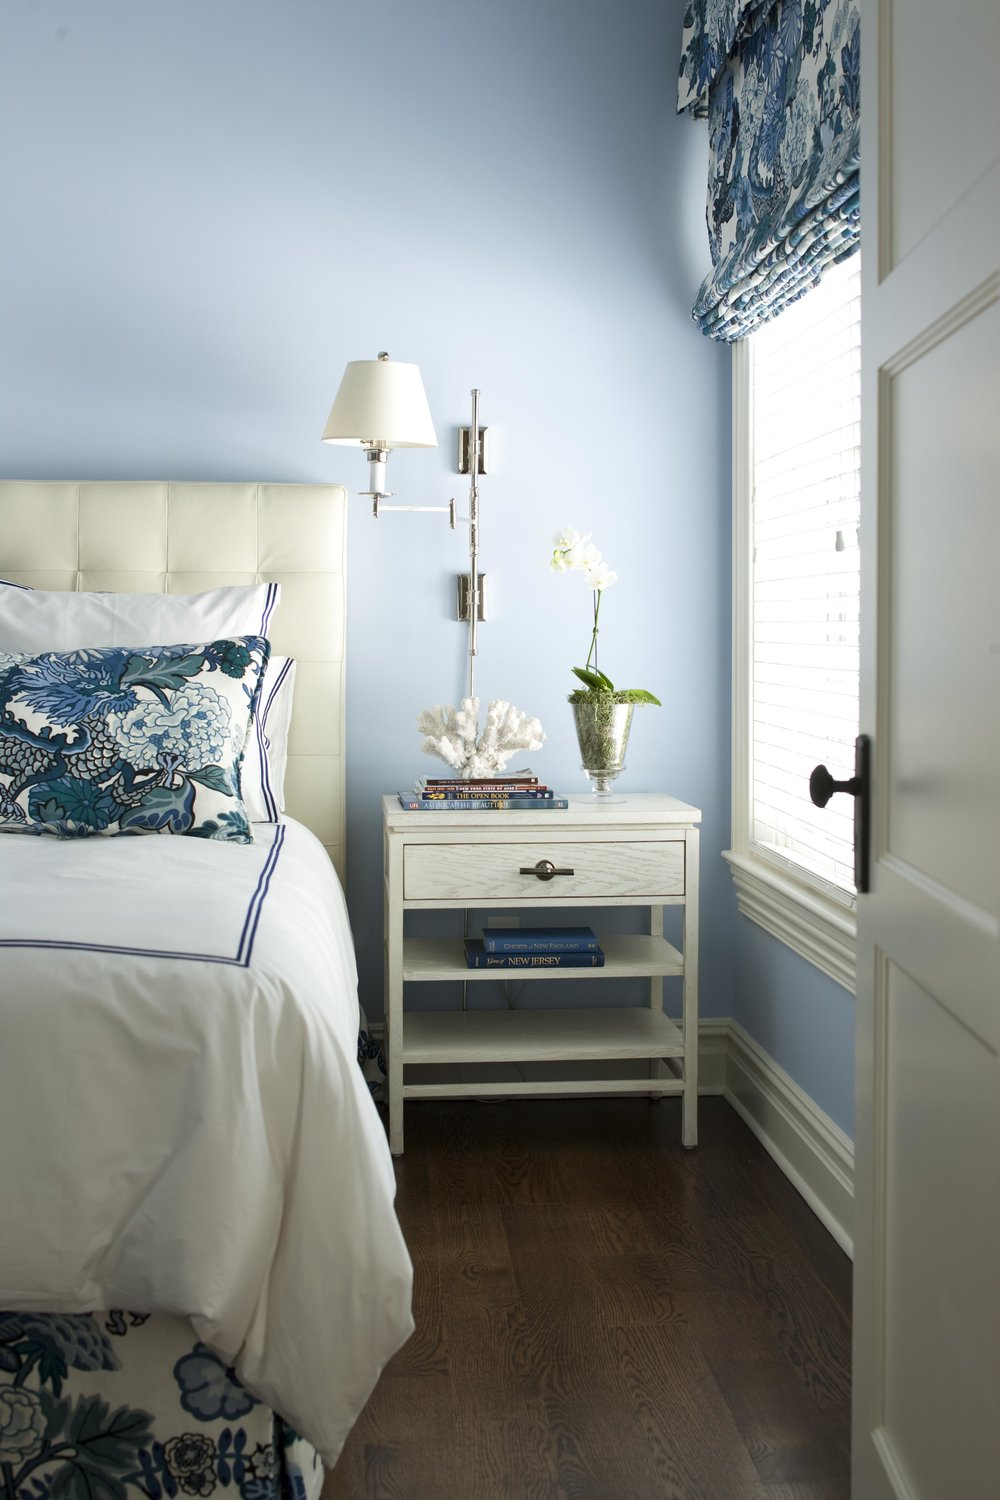 S_Mosle_GuestBed_1148.jpg